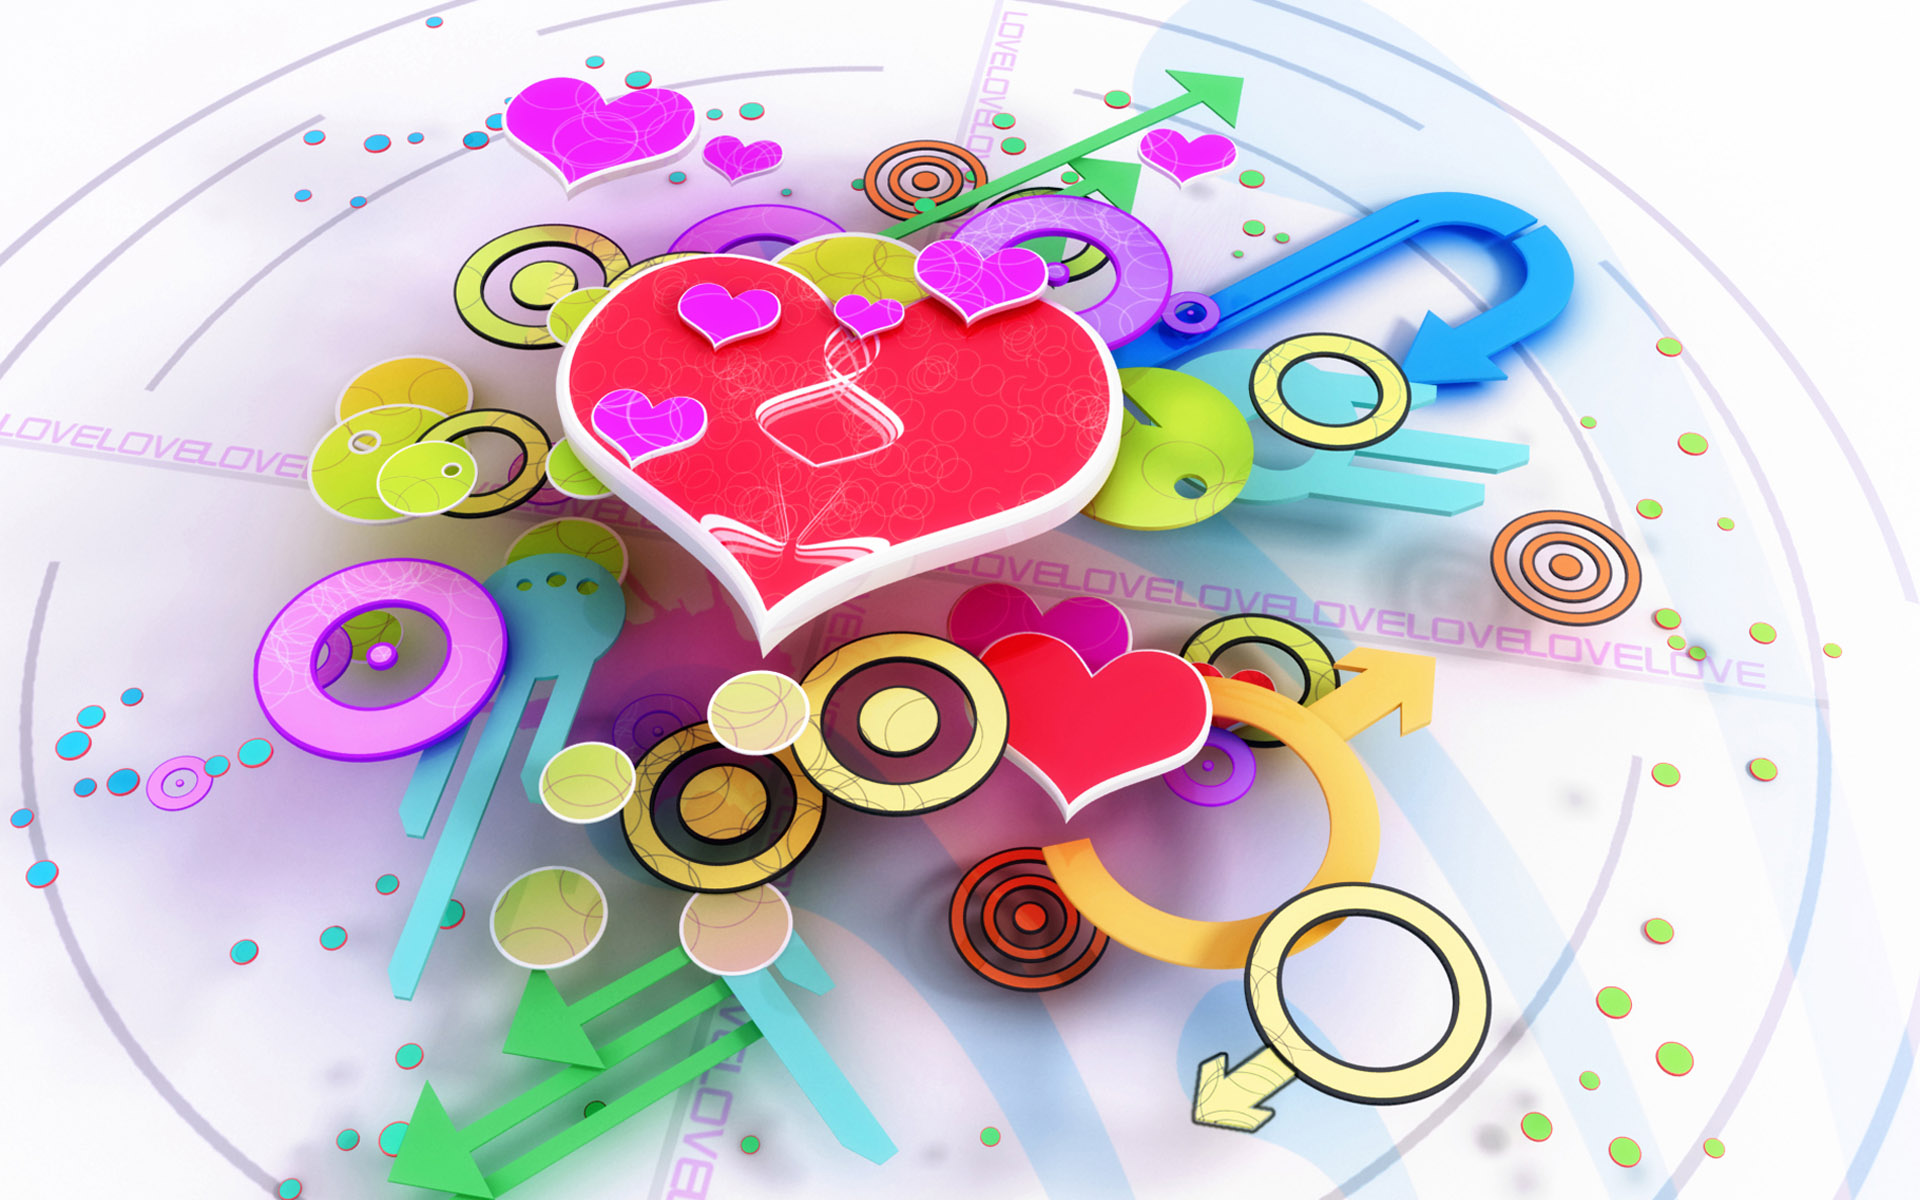 Abstract Free Wallpaper Photos Of Love And Hearts Wallpaper